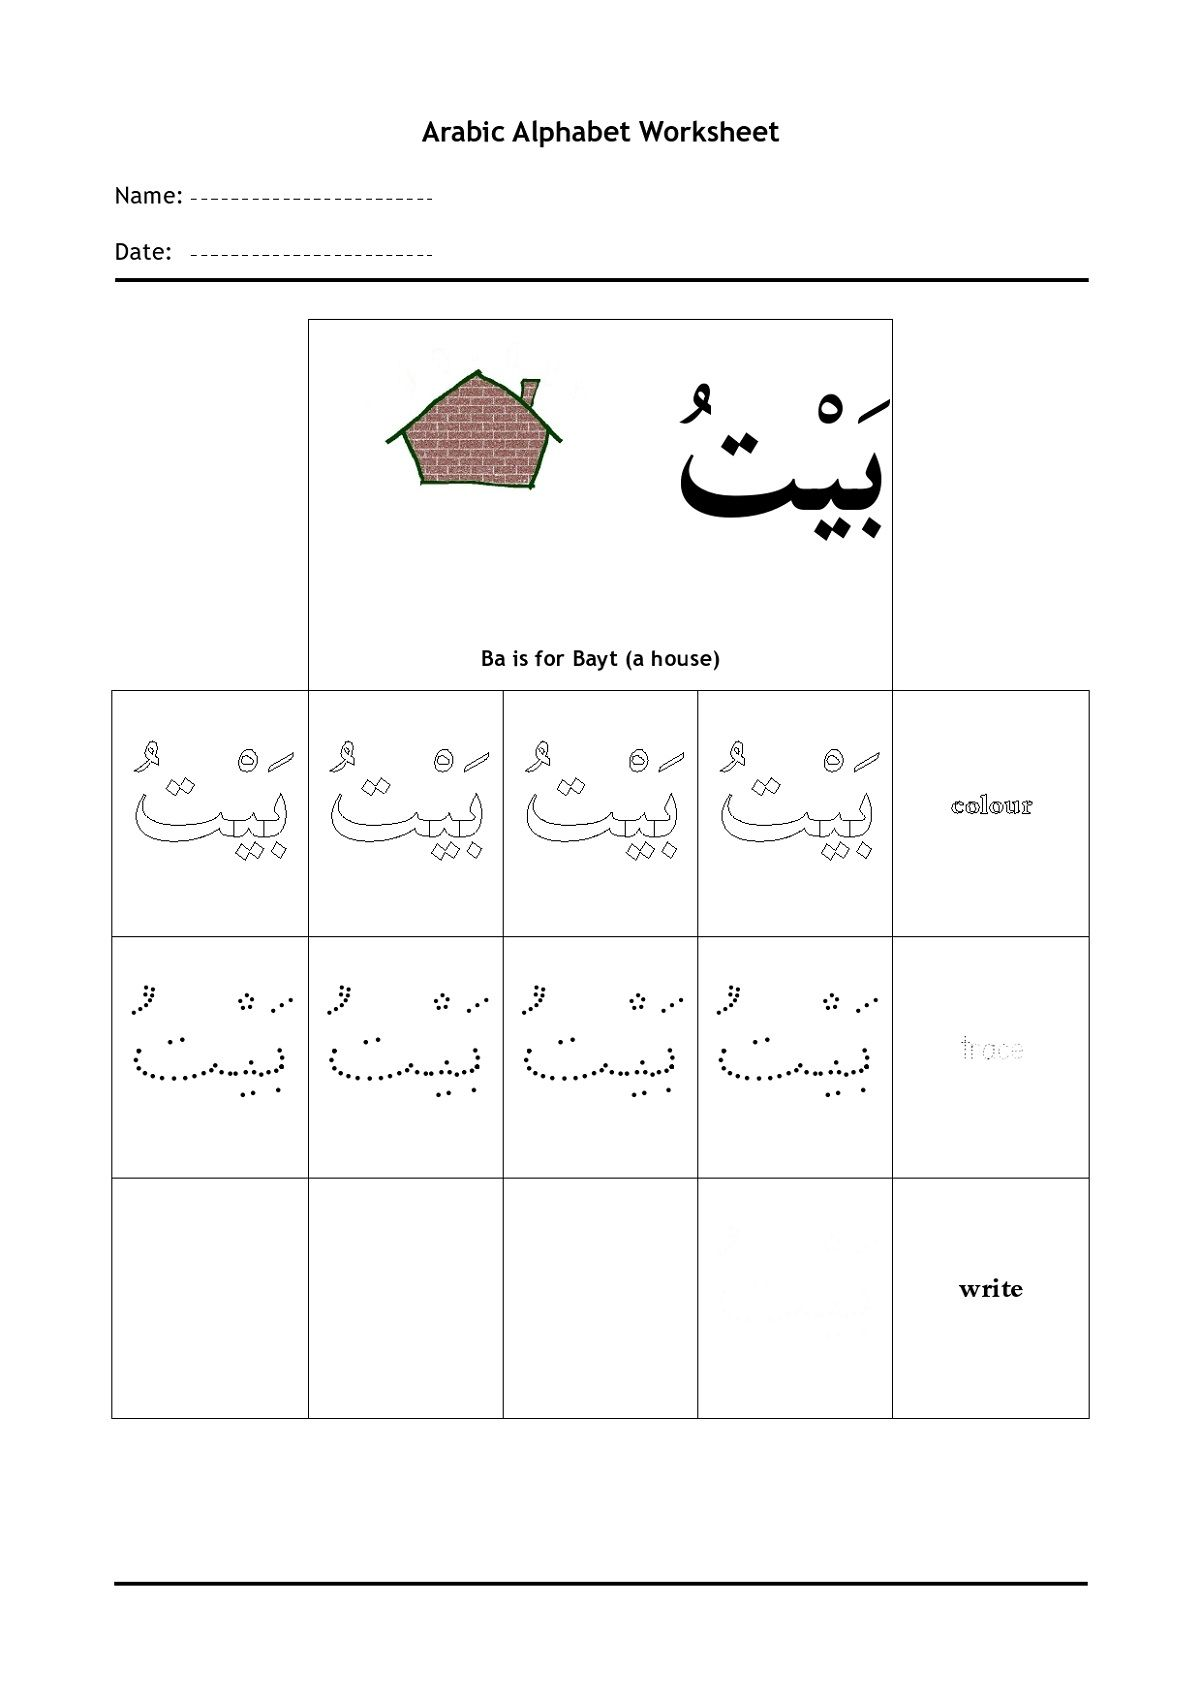 Arabic Alphabet Worksheets For Arabic Language Learning